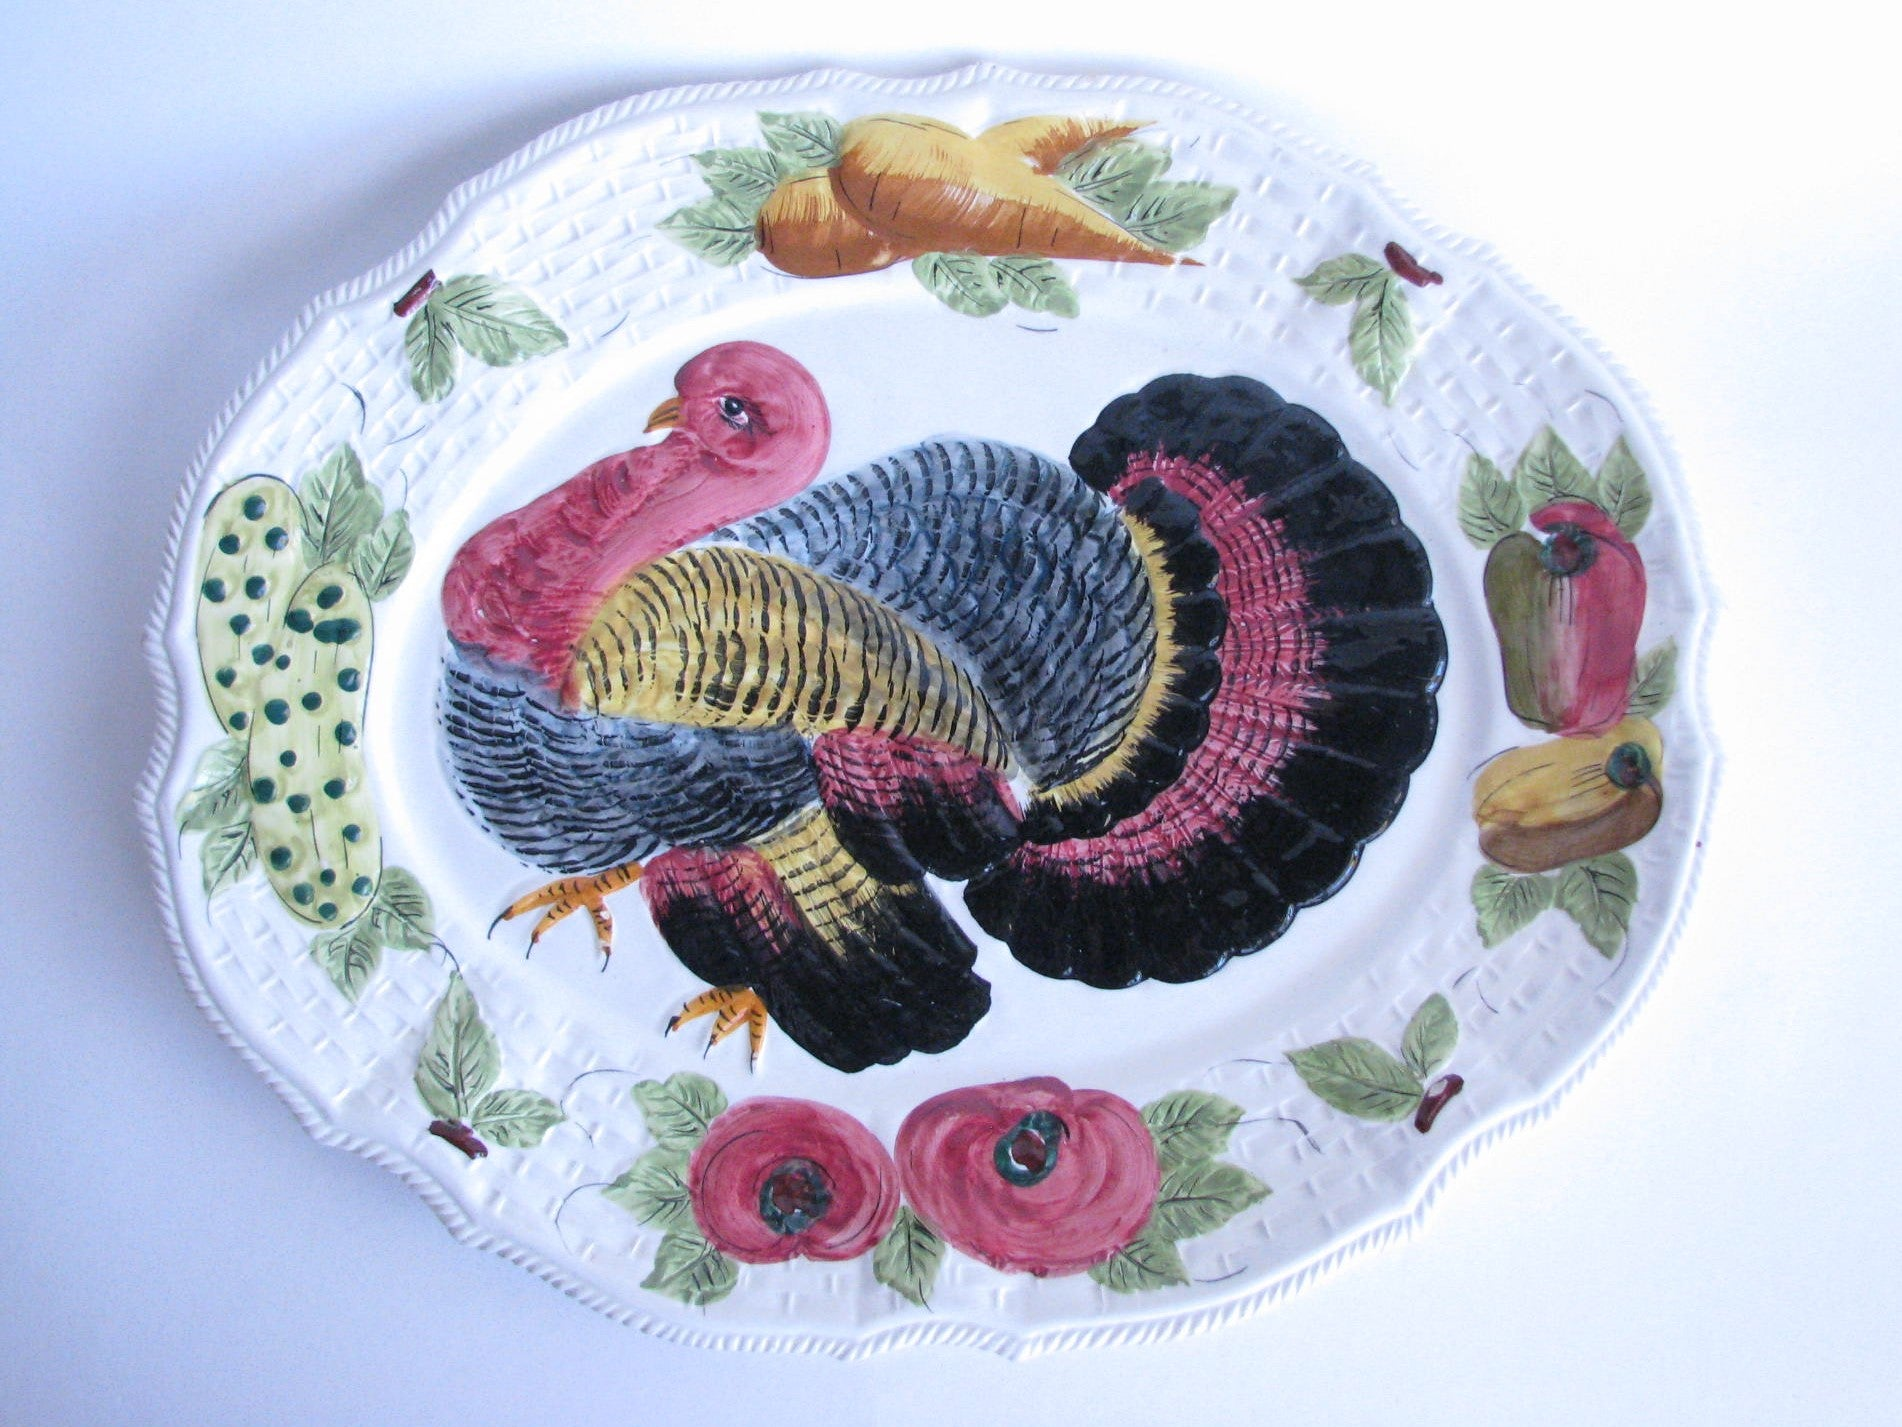 edgebrookhouse - Vintage Large Colorful Ceramic Turkey Platter Made in Italy